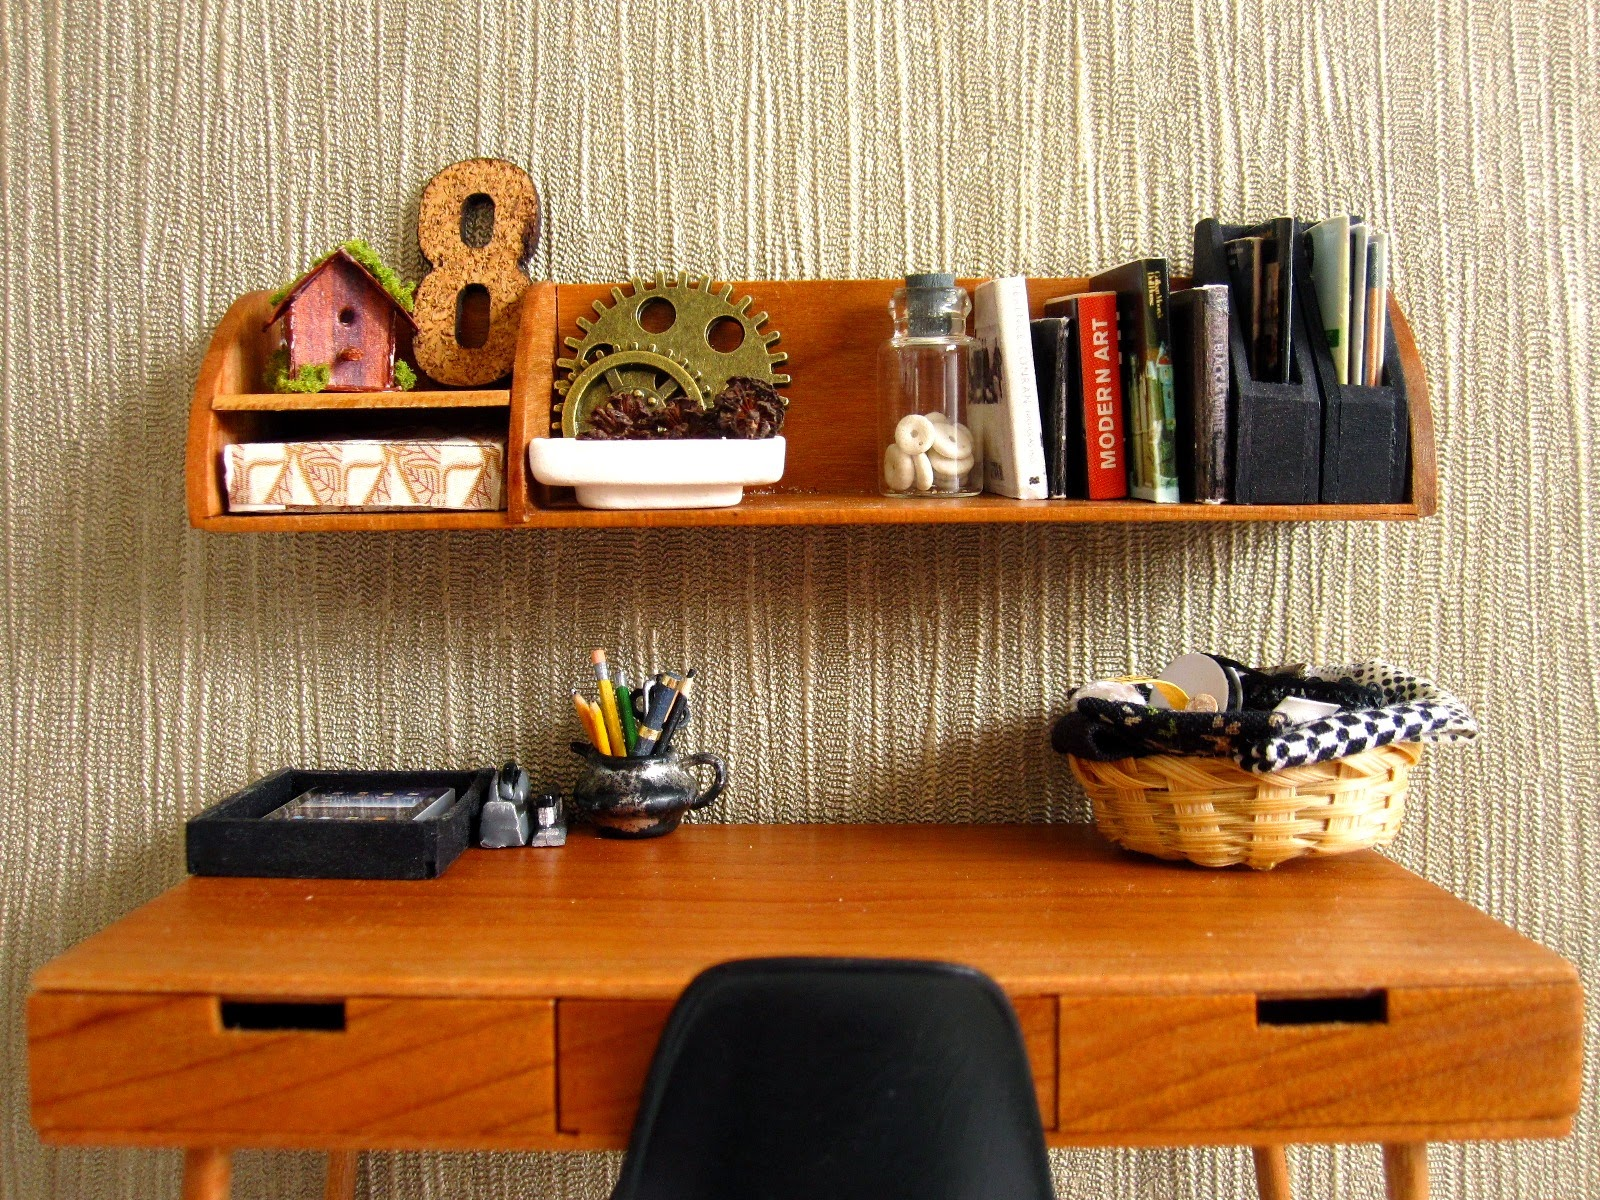 Modern dolls' house scene of a mid-century modern desk with shelf above holding a selection of books and magazines plus various industrial-style ornaments in browns and blacks,